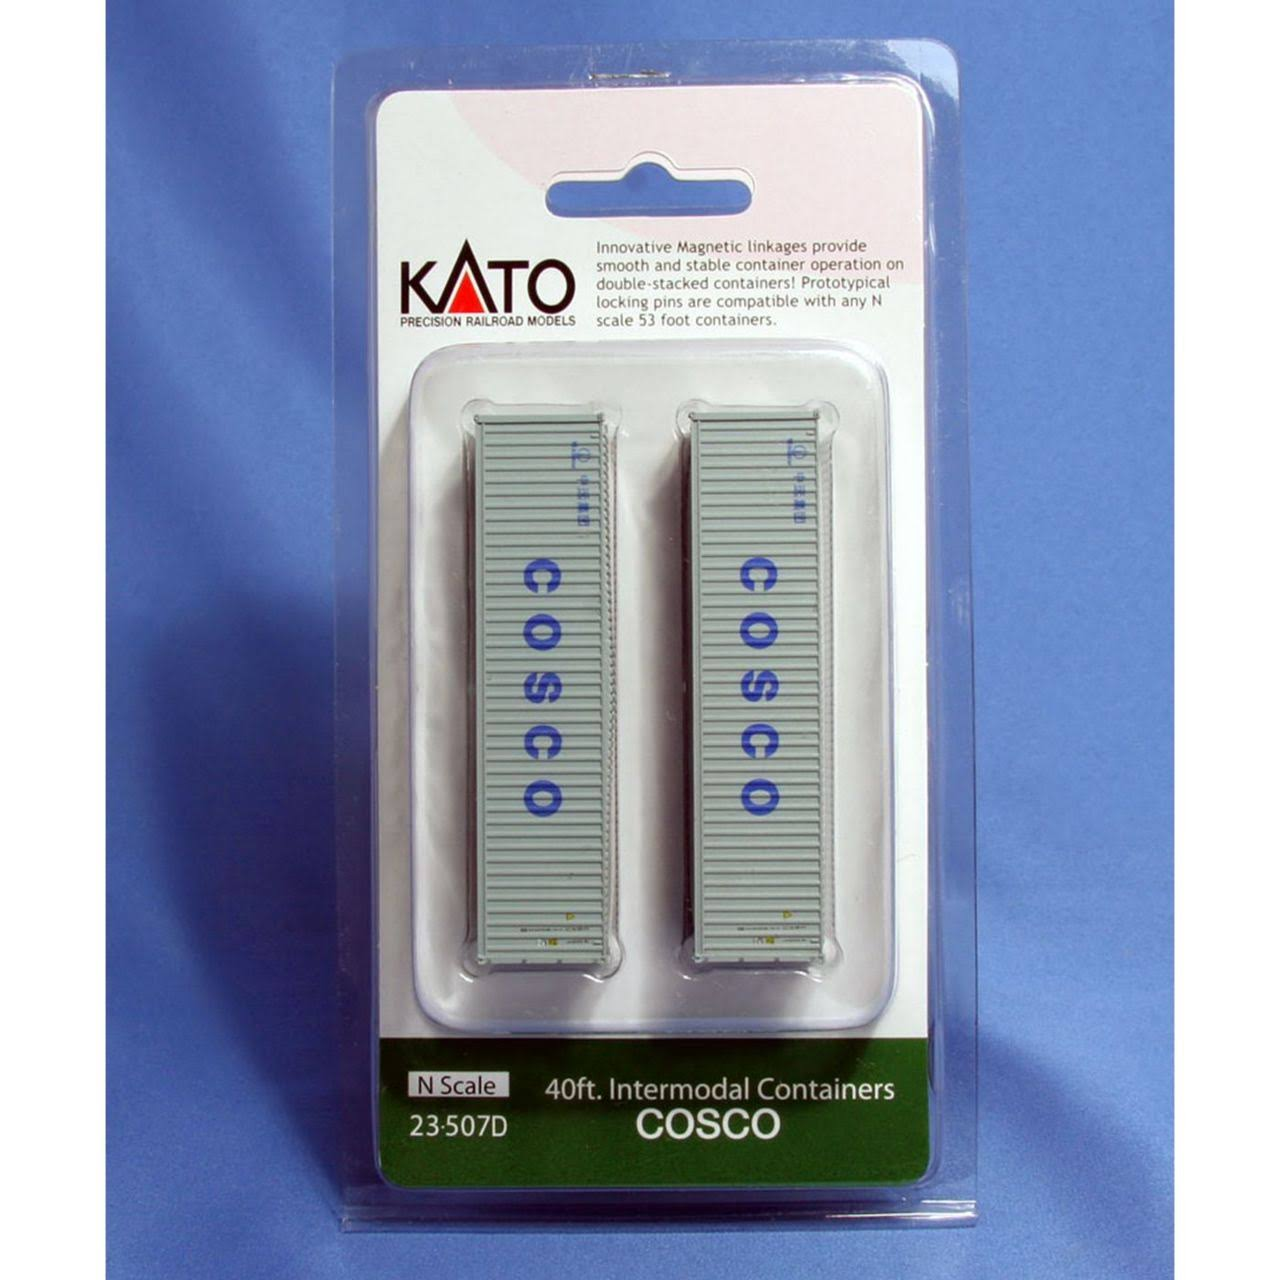 Kato USA N 40' Container Cosco (2) KAT23507D